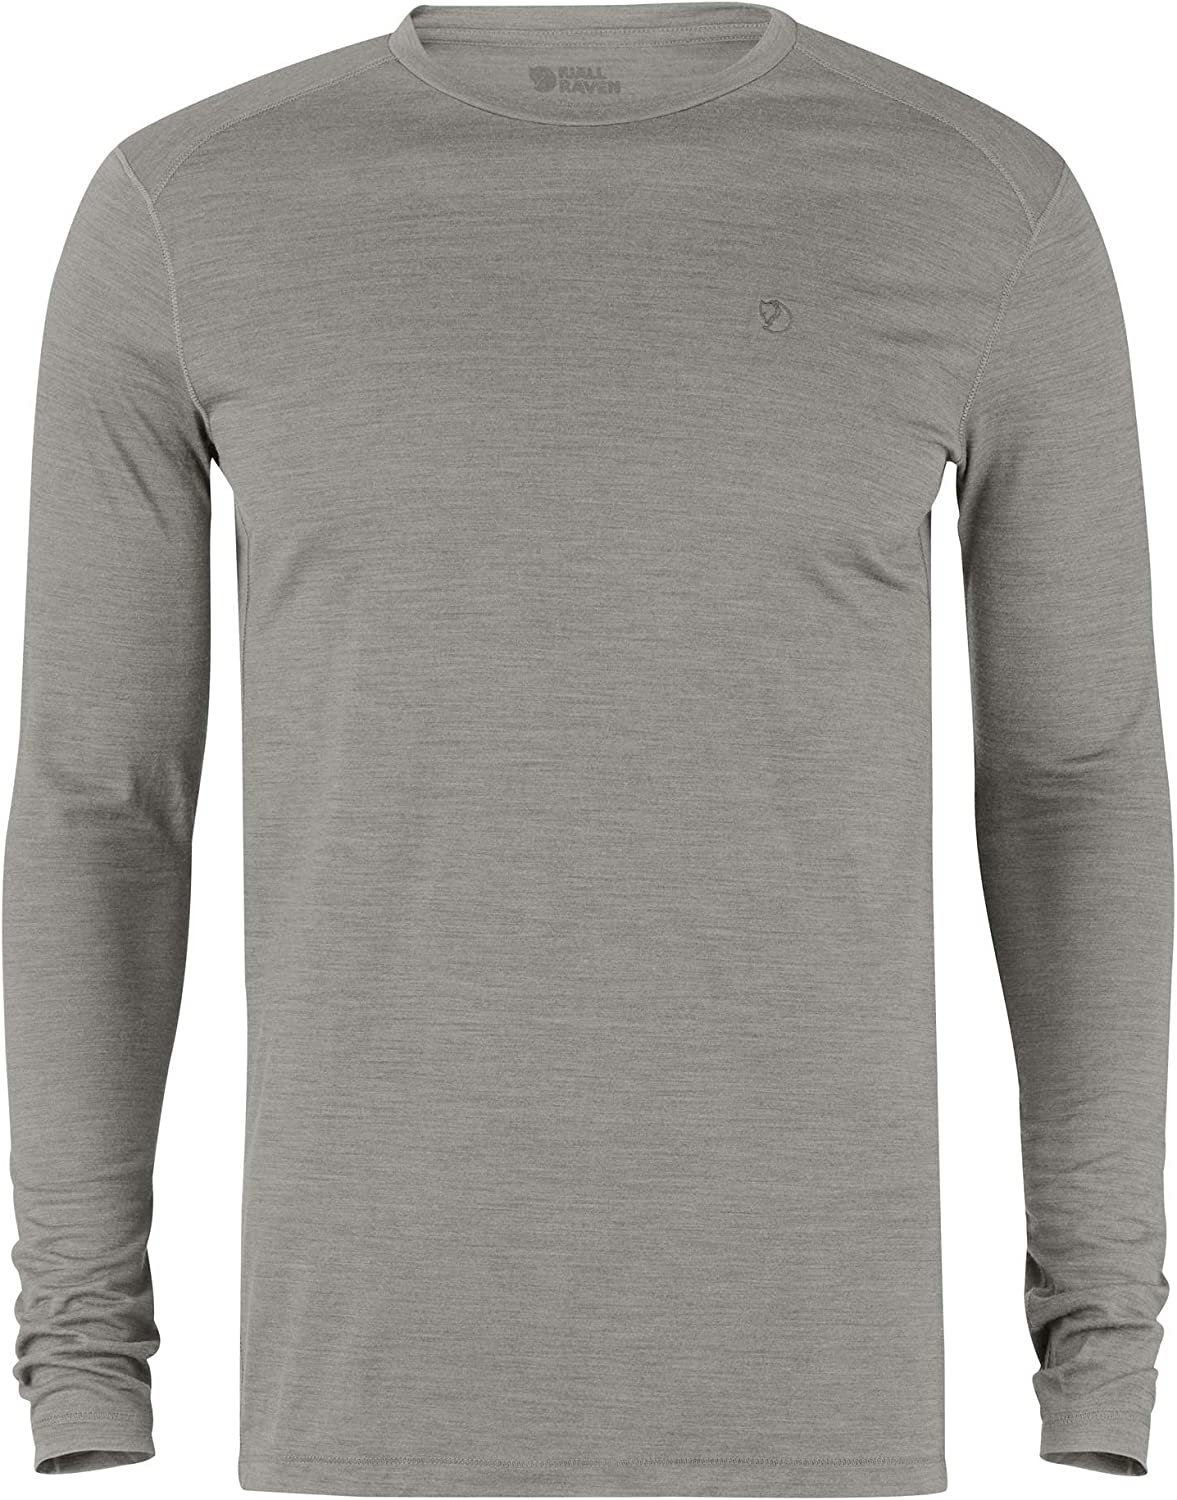 FJLLRVEN Herren High Coast First Layer Ls Langarmshirt Longsleeve Funktionsshirt